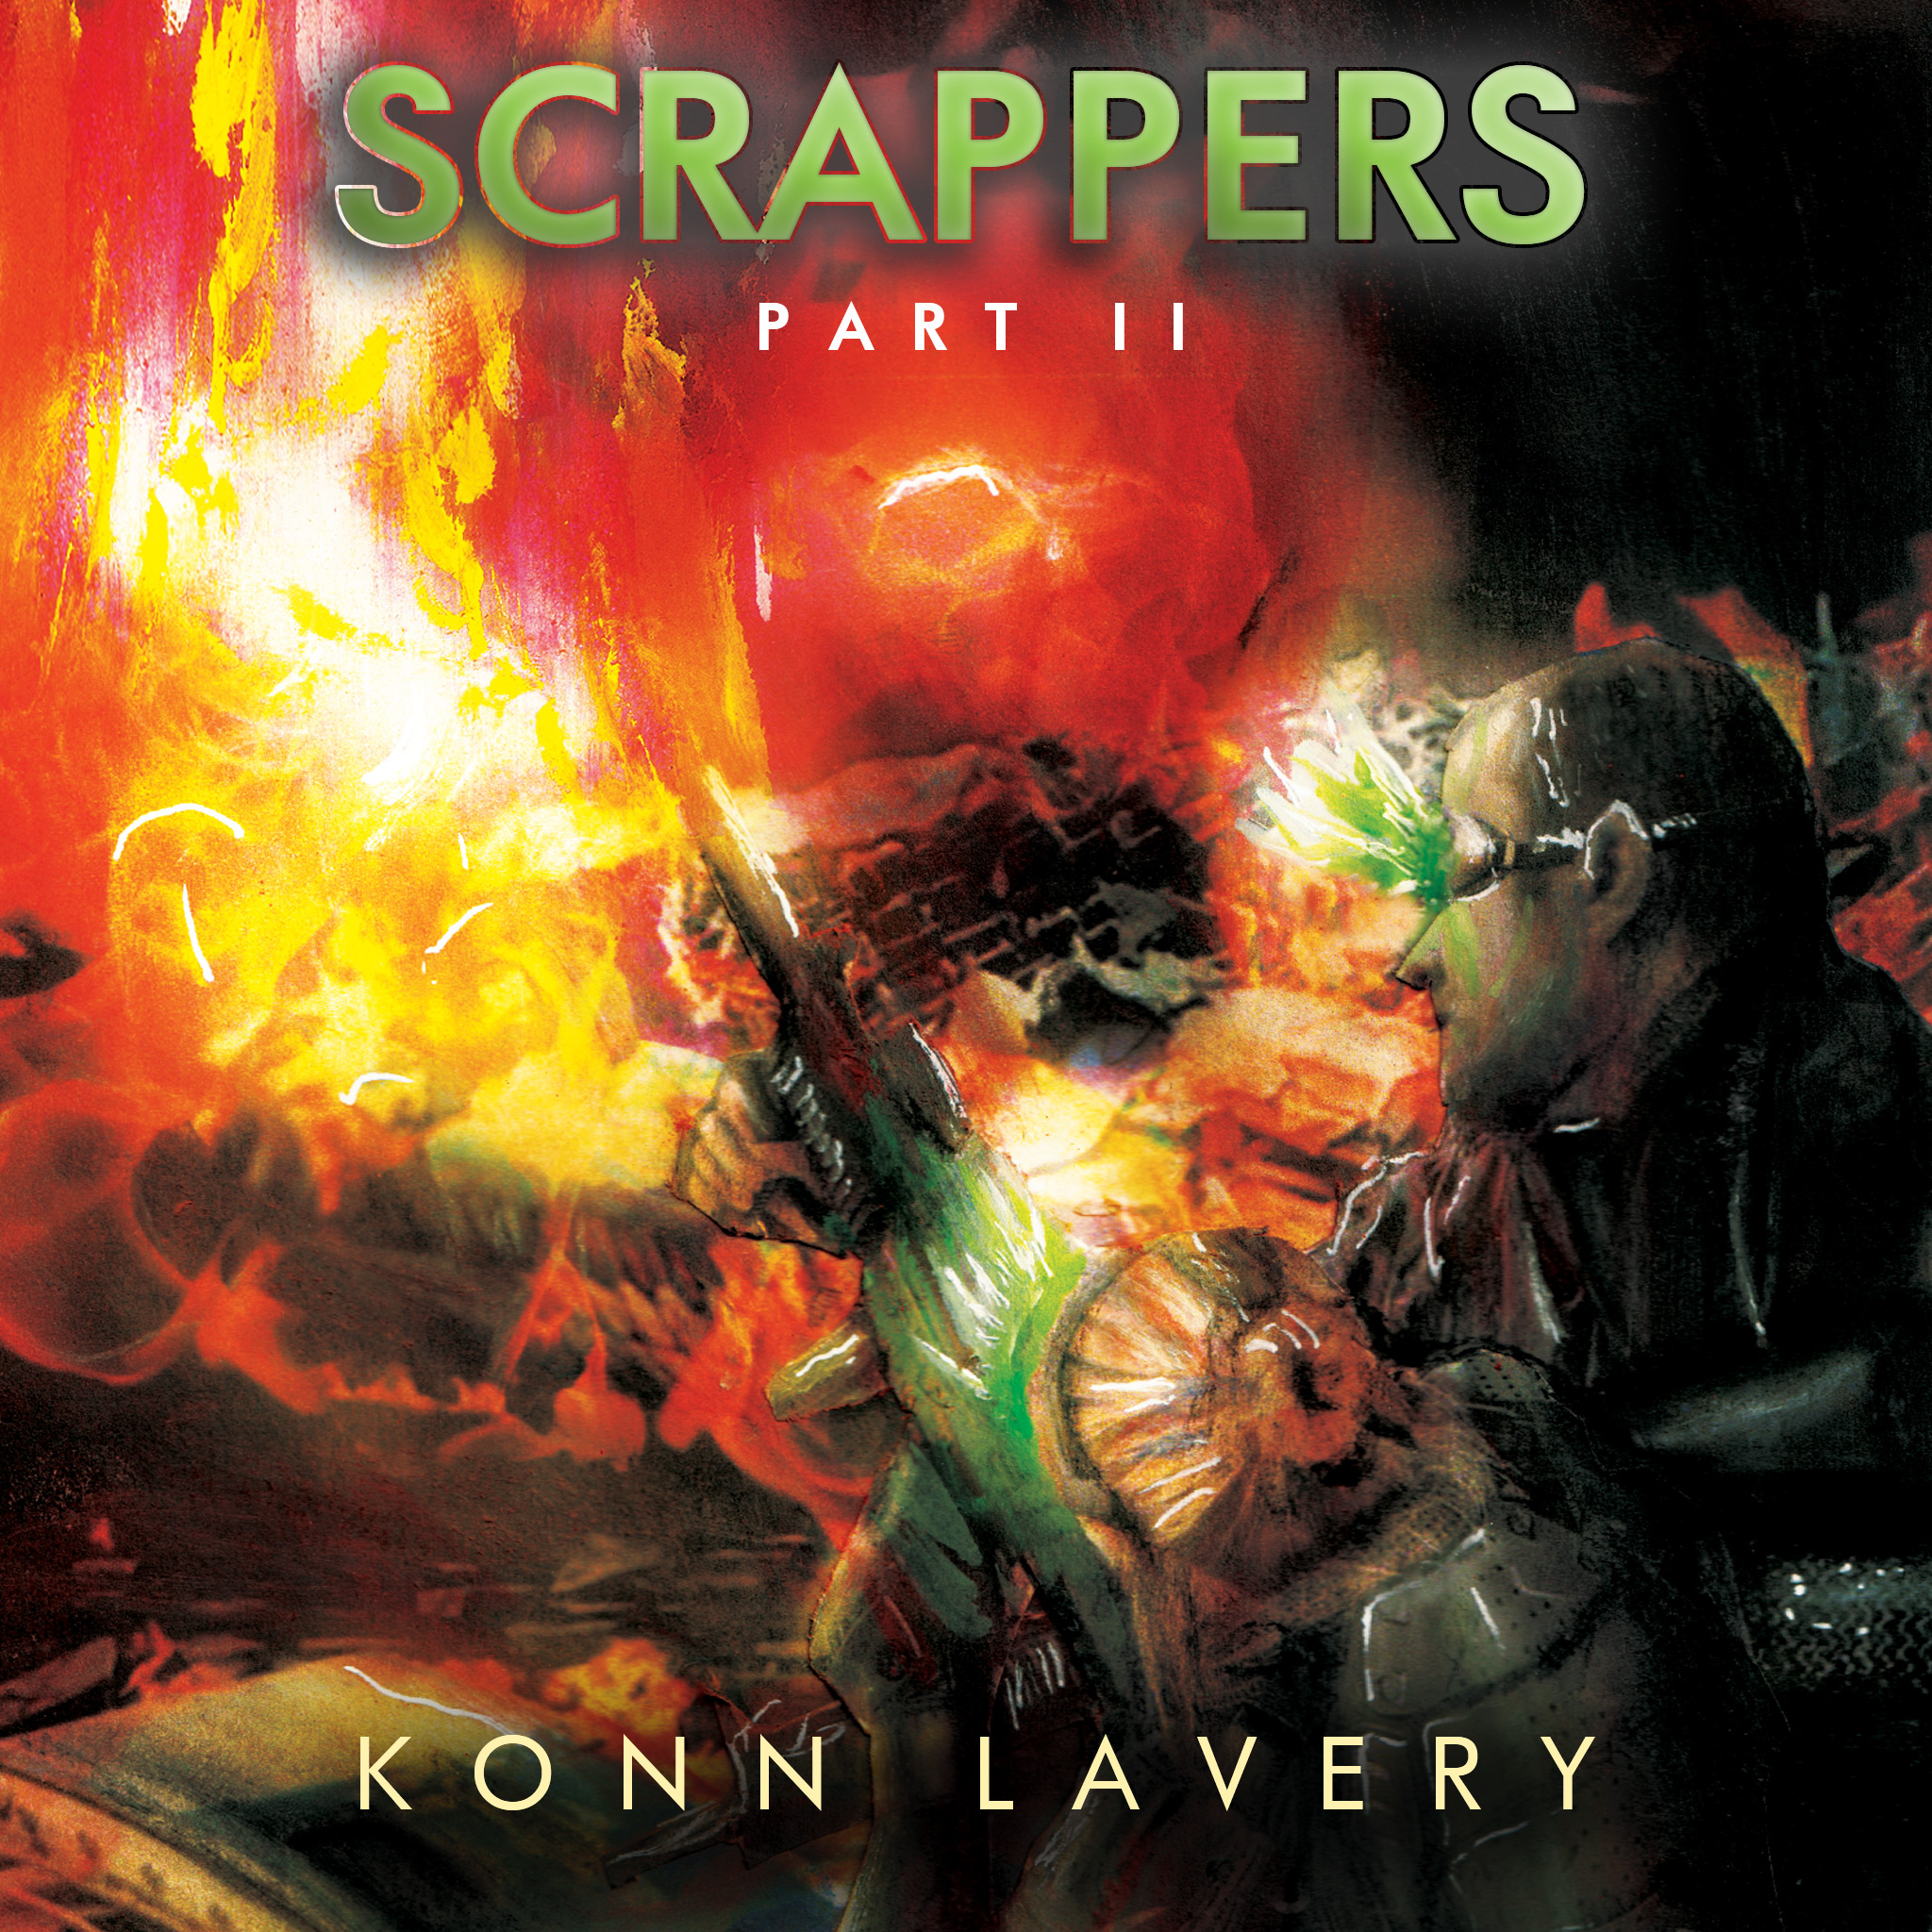 Scrappers Part IIby Konn Lavery